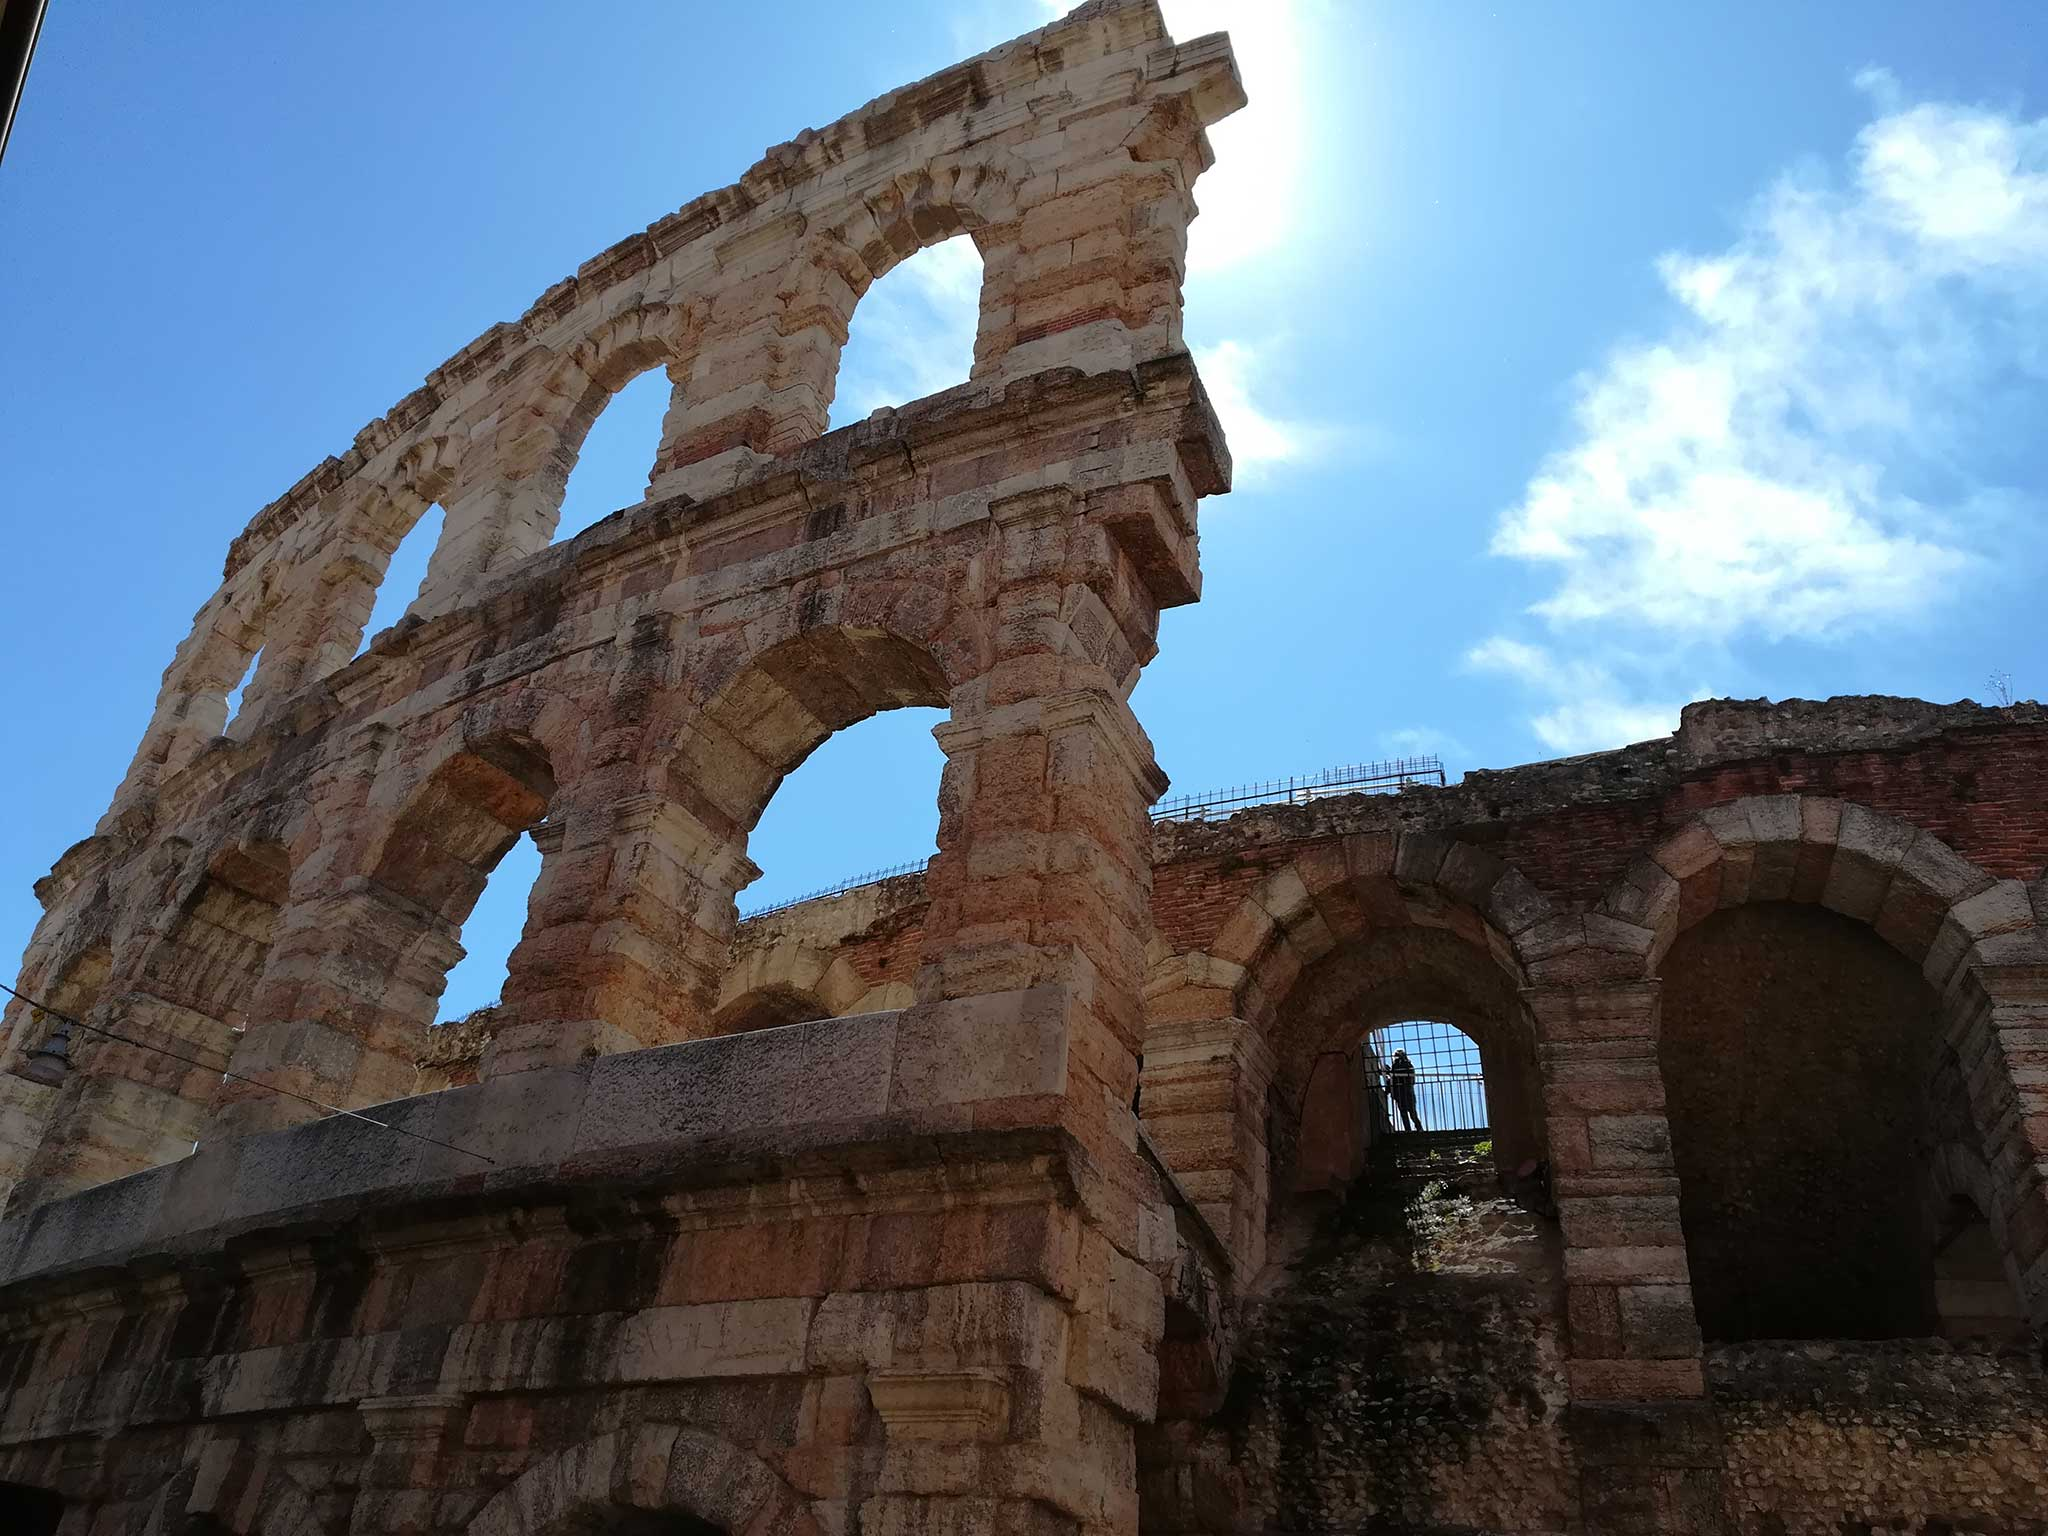 By the Ala of the Arena on Verona audio tour A stroll through the city of Romeo and Juliet